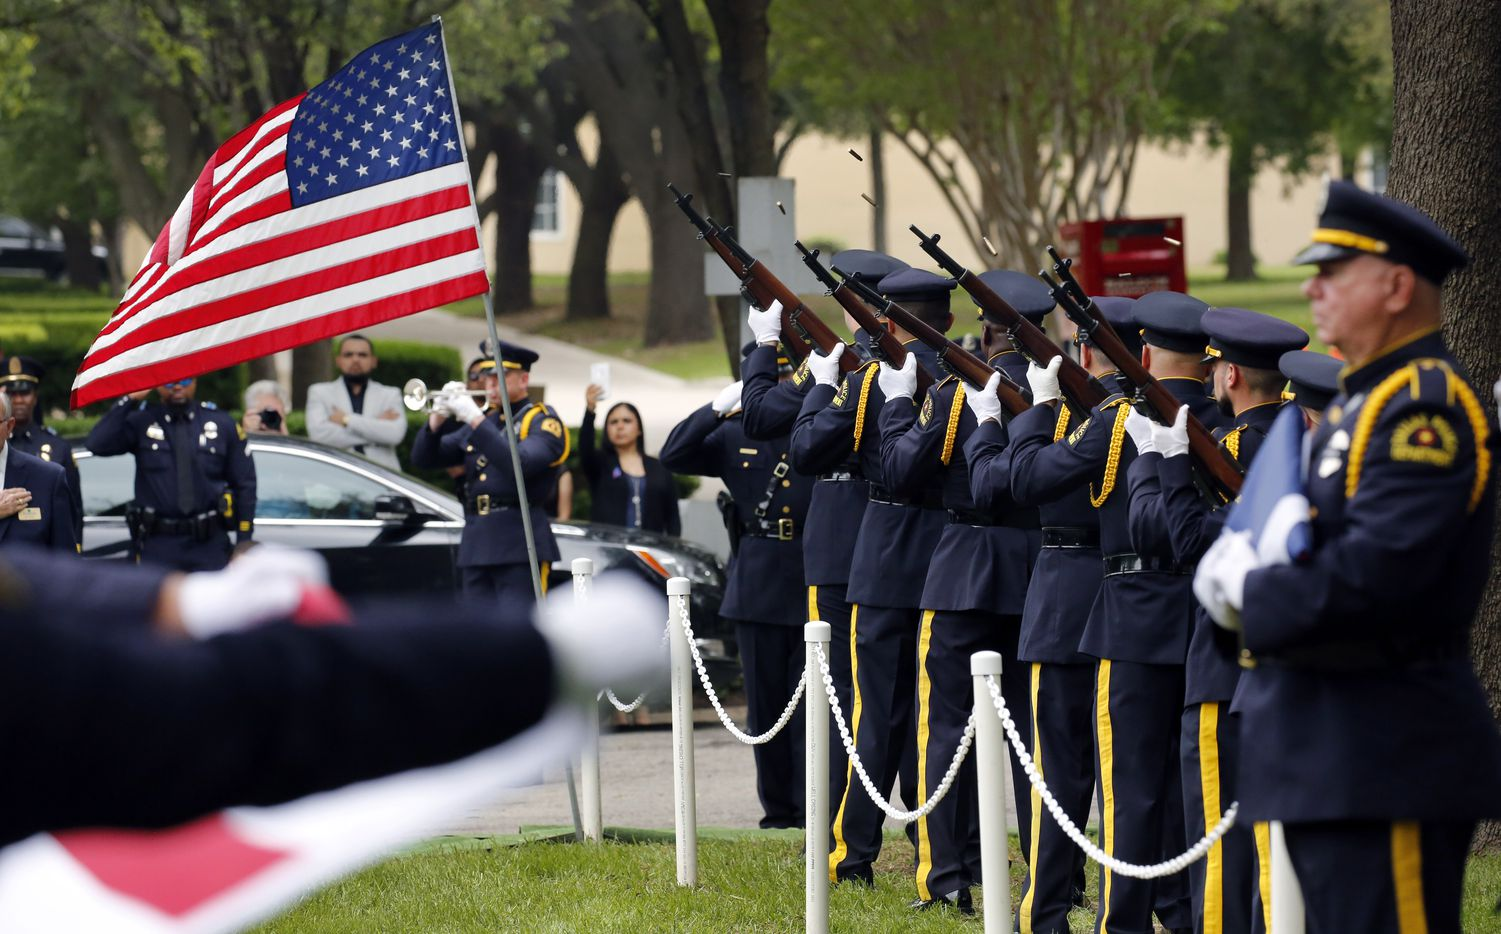 Shell casings fly as a 21-gun salute is performed during the burial of Dallas police Officer Rogelio Santander, Jr., 27, in the Garden of Honor.